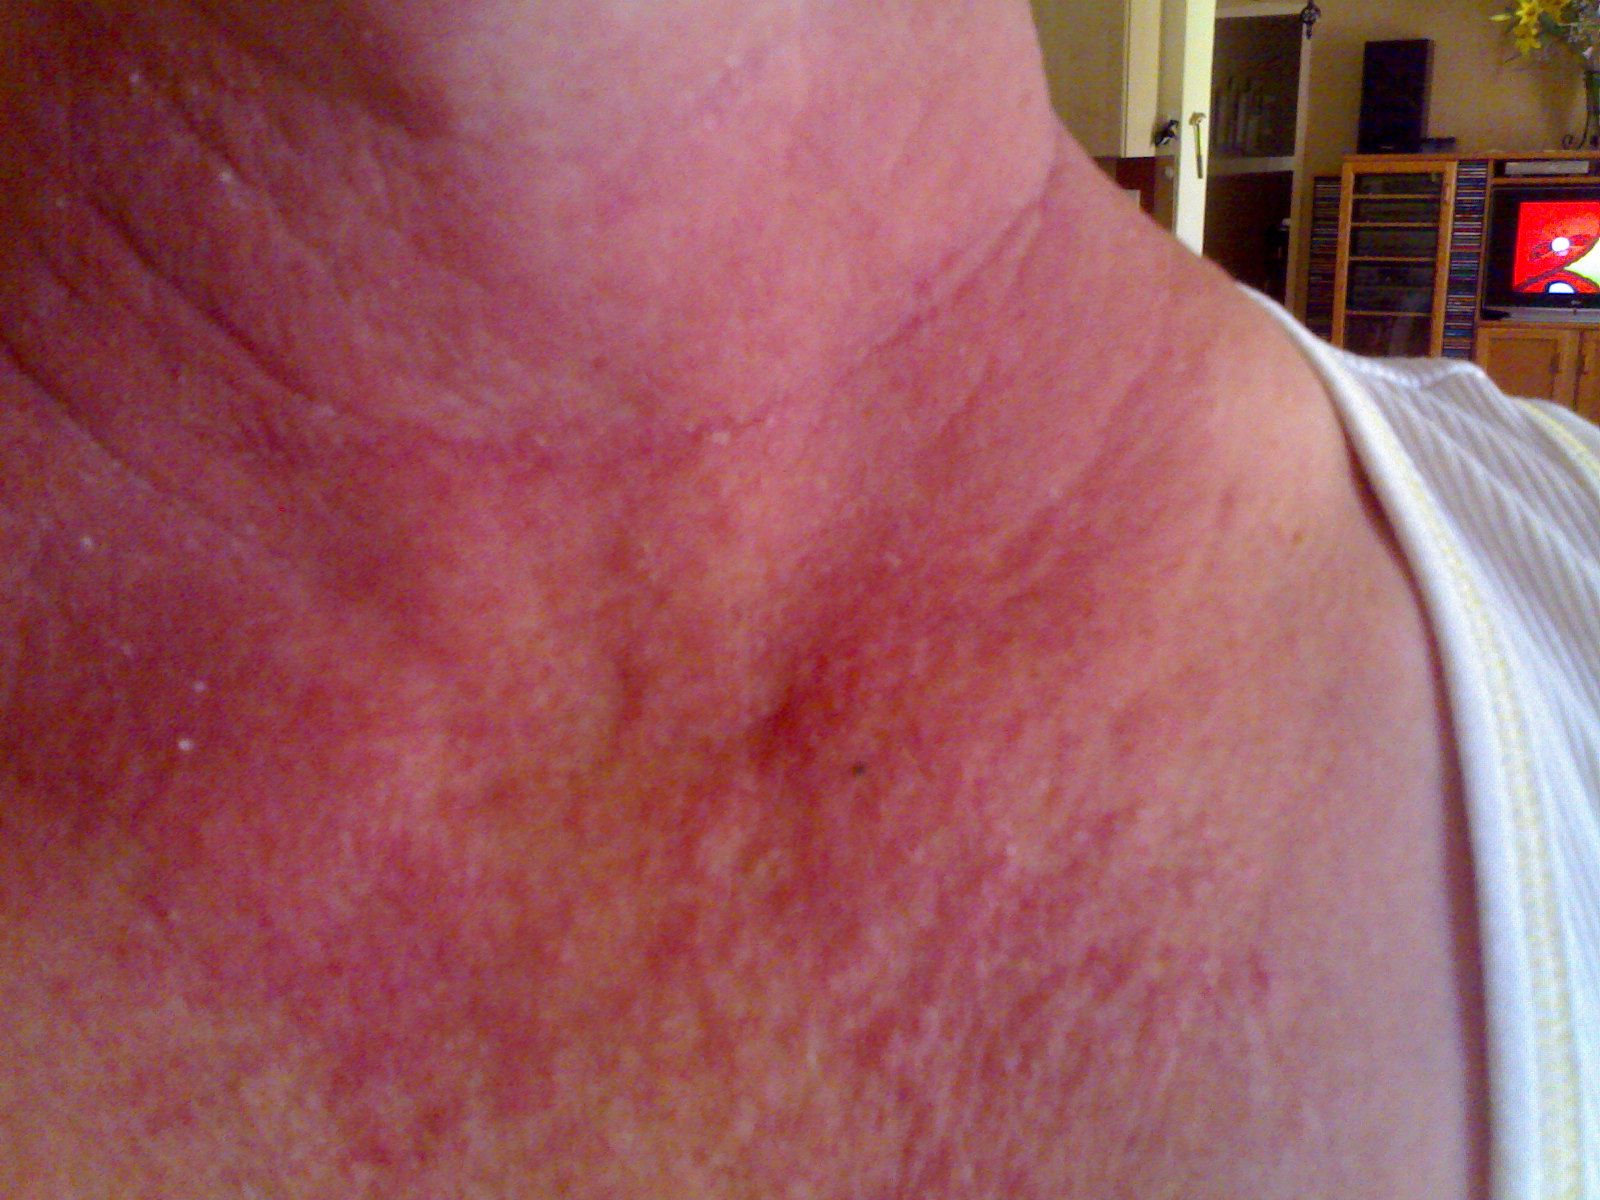 Doctor insights on: Red Blotches On Neck And Chest - HealthTap